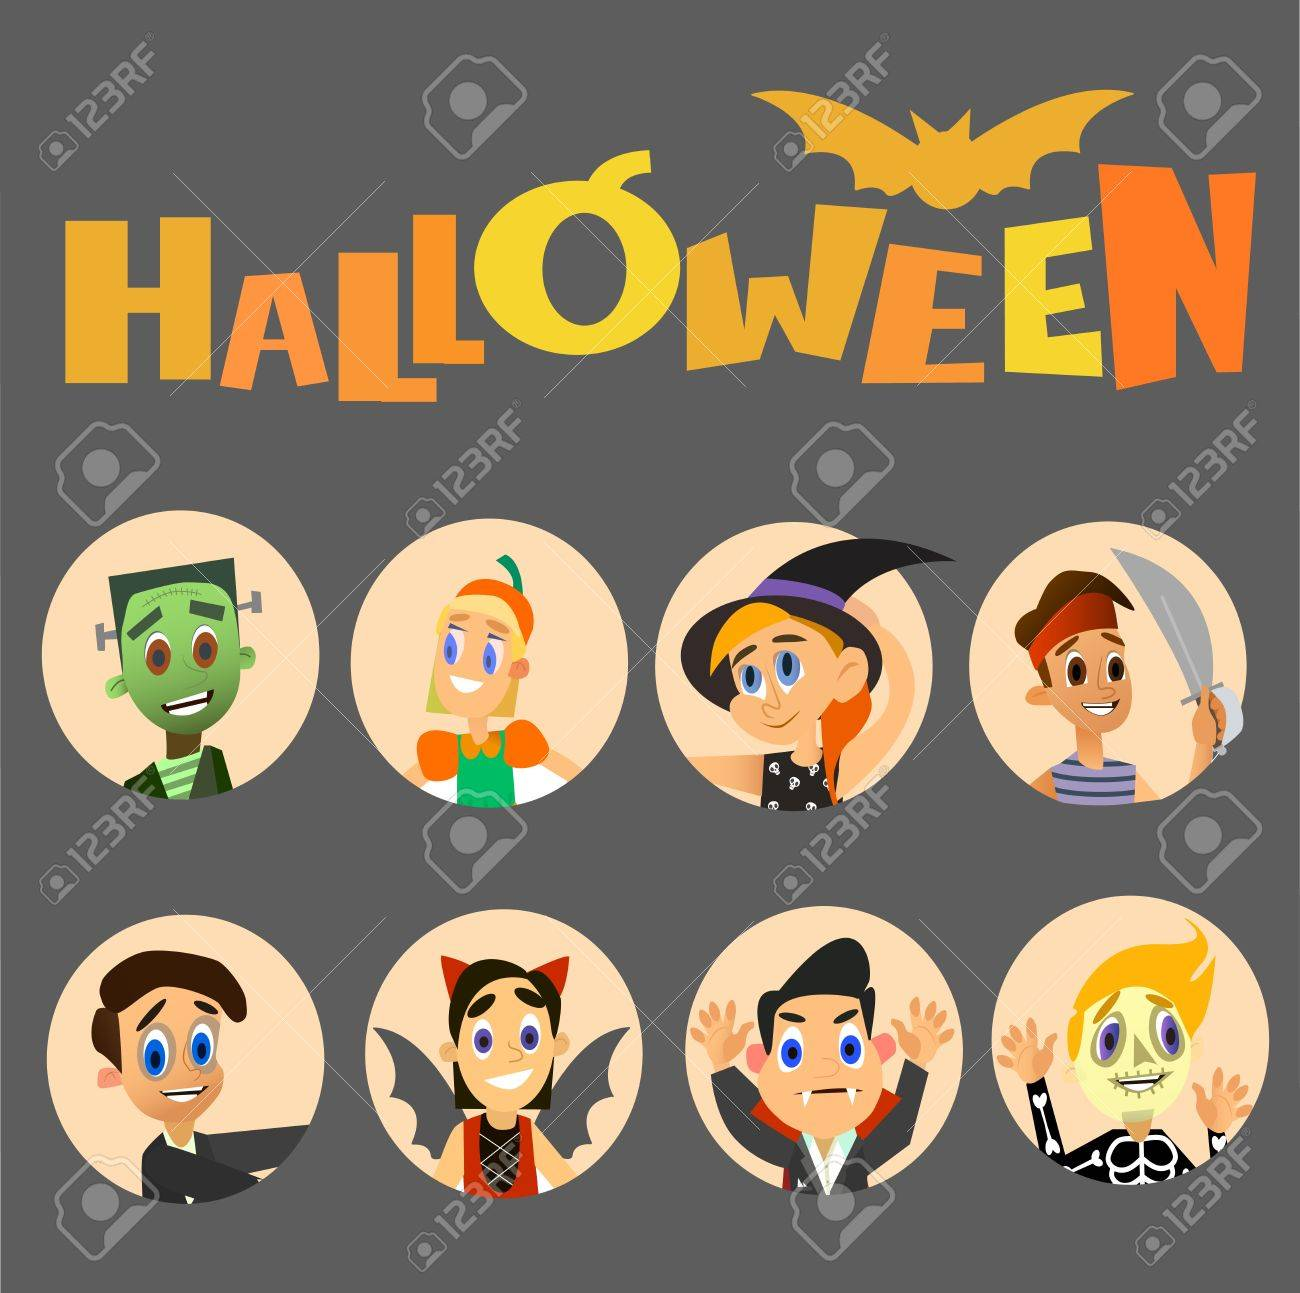 Happy children Halloween avatar costume collection and crow.Vector illustration of a flat design.  sc 1 st  123RF.com & Happy Children Halloween Avatar Costume Collection And Crow.Vector ...